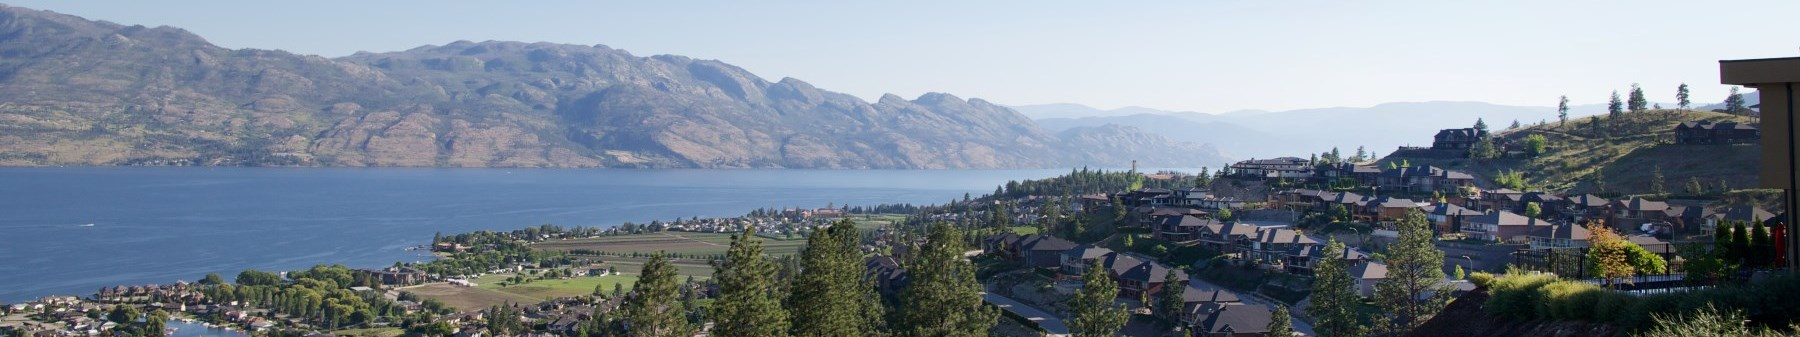 West Kelowna View CWK Image